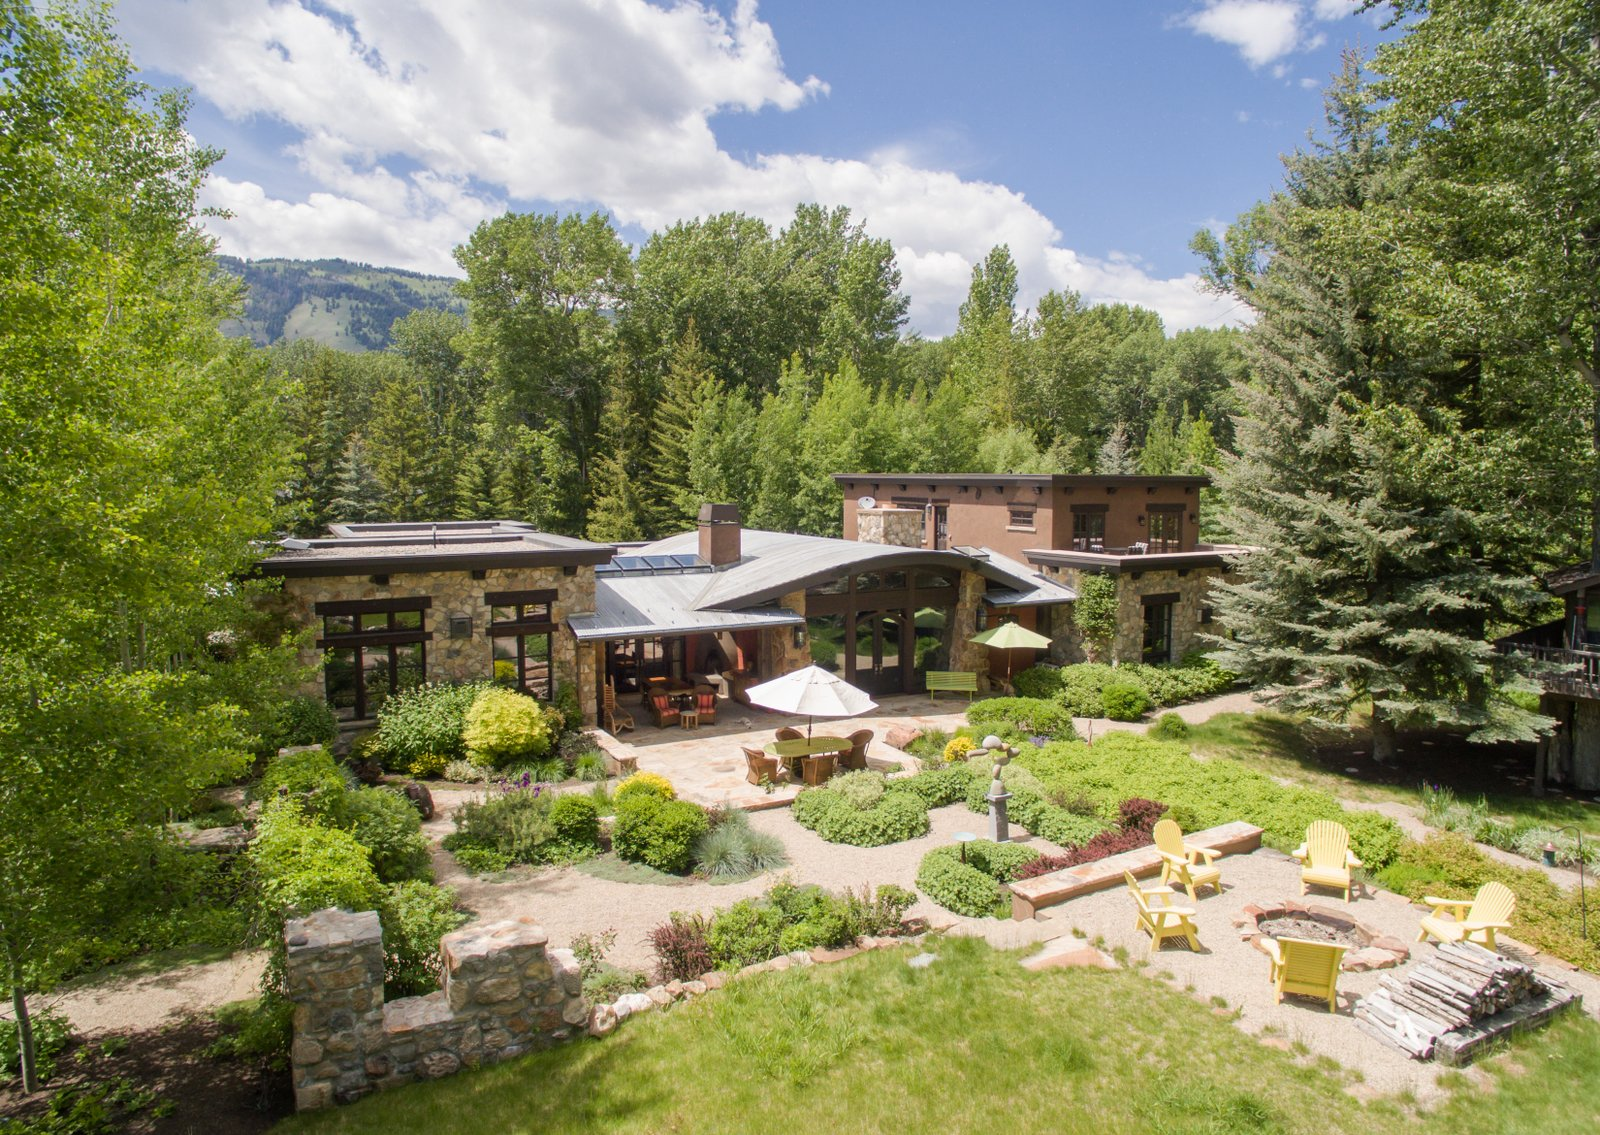 Maison unifamiliale pour l Vente à Old World Craftsmanship Meets Contemporary Mountain Living 102 Sutton Place Mid Valley, Ketchum, Idaho, 83340 États-Unis